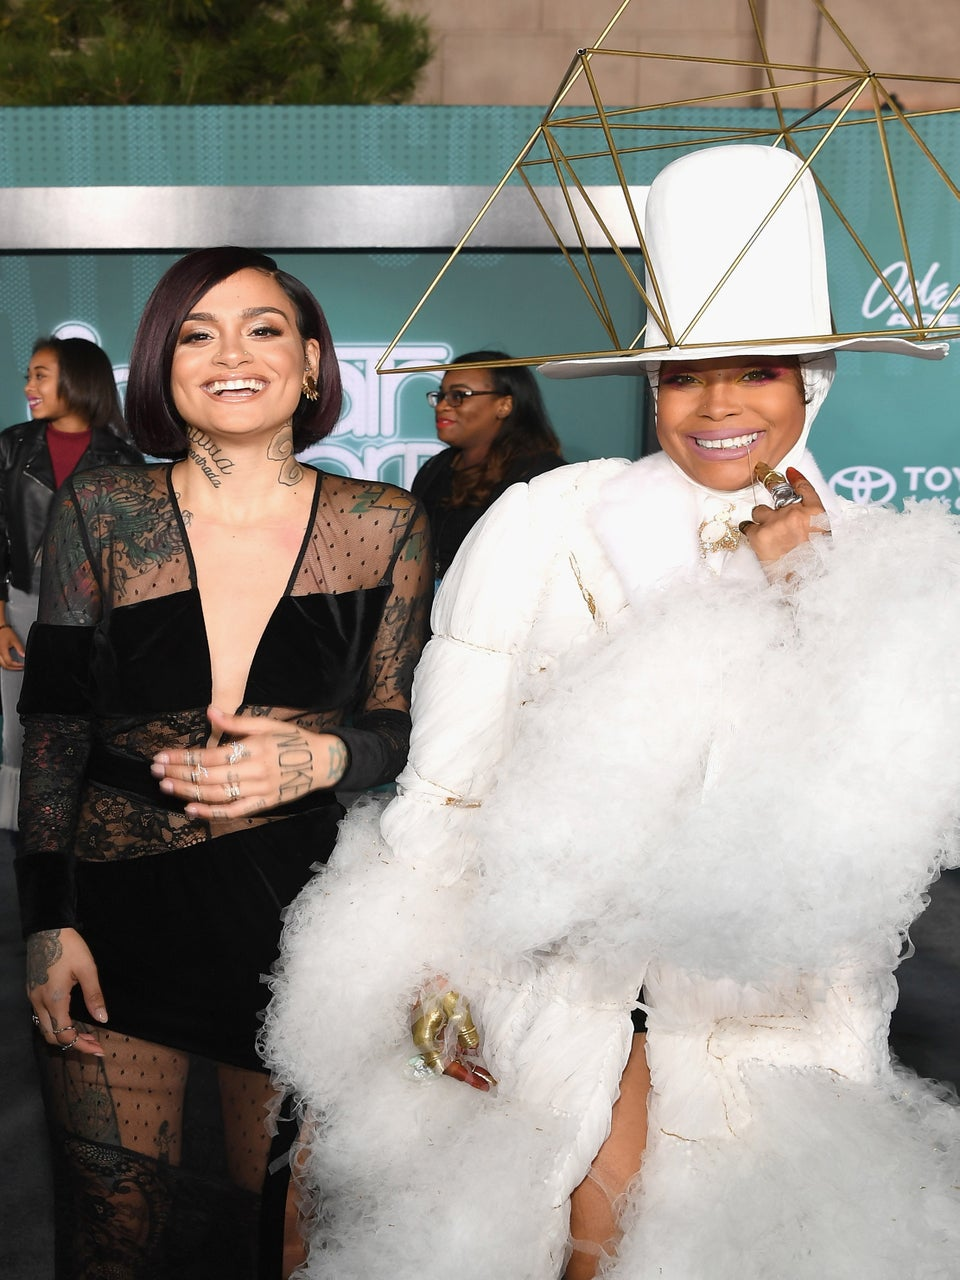 All The Eye-Catching Looks From The 2017 Soul Train Music Awards